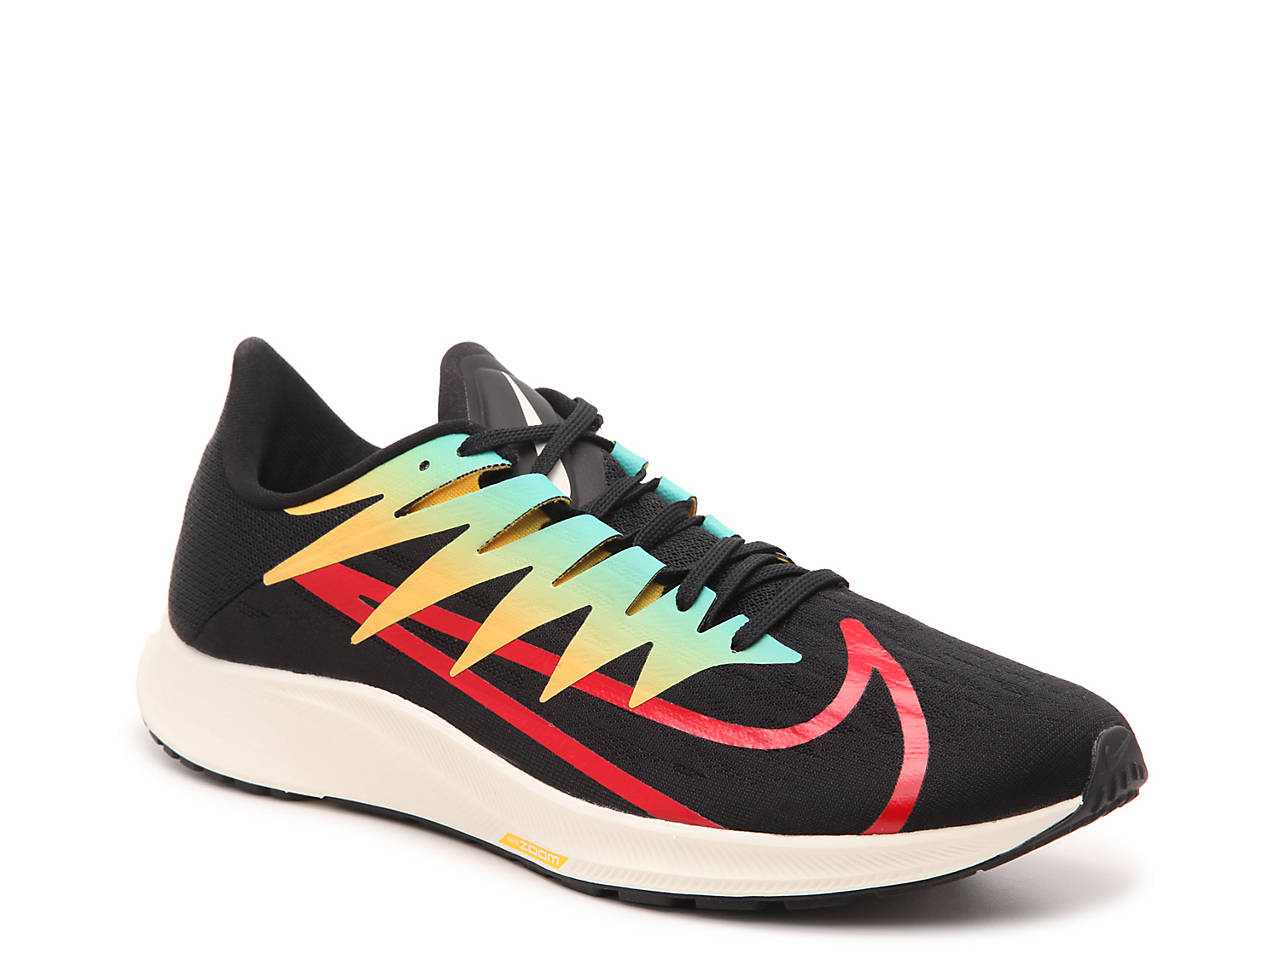 finest selection 8172b a8d35 Nike Zoom Rival Fly Training Sneaker - Men's Men's Shoes | DSW